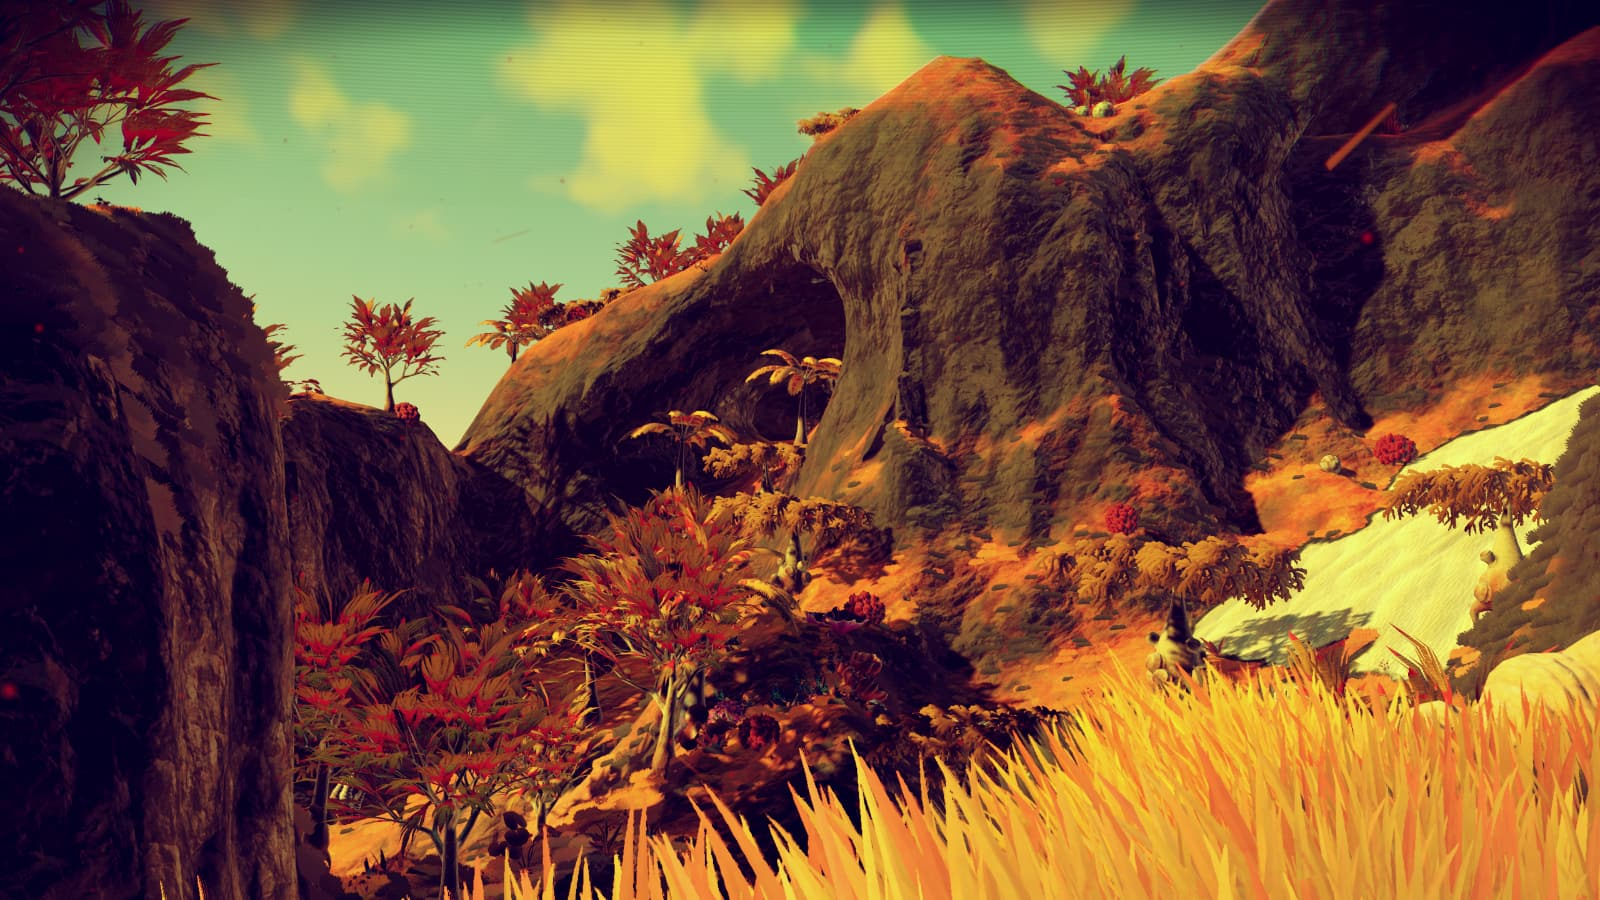 Photo of a craggy elevation on a golden lush world from No Man's Sky version 1.1